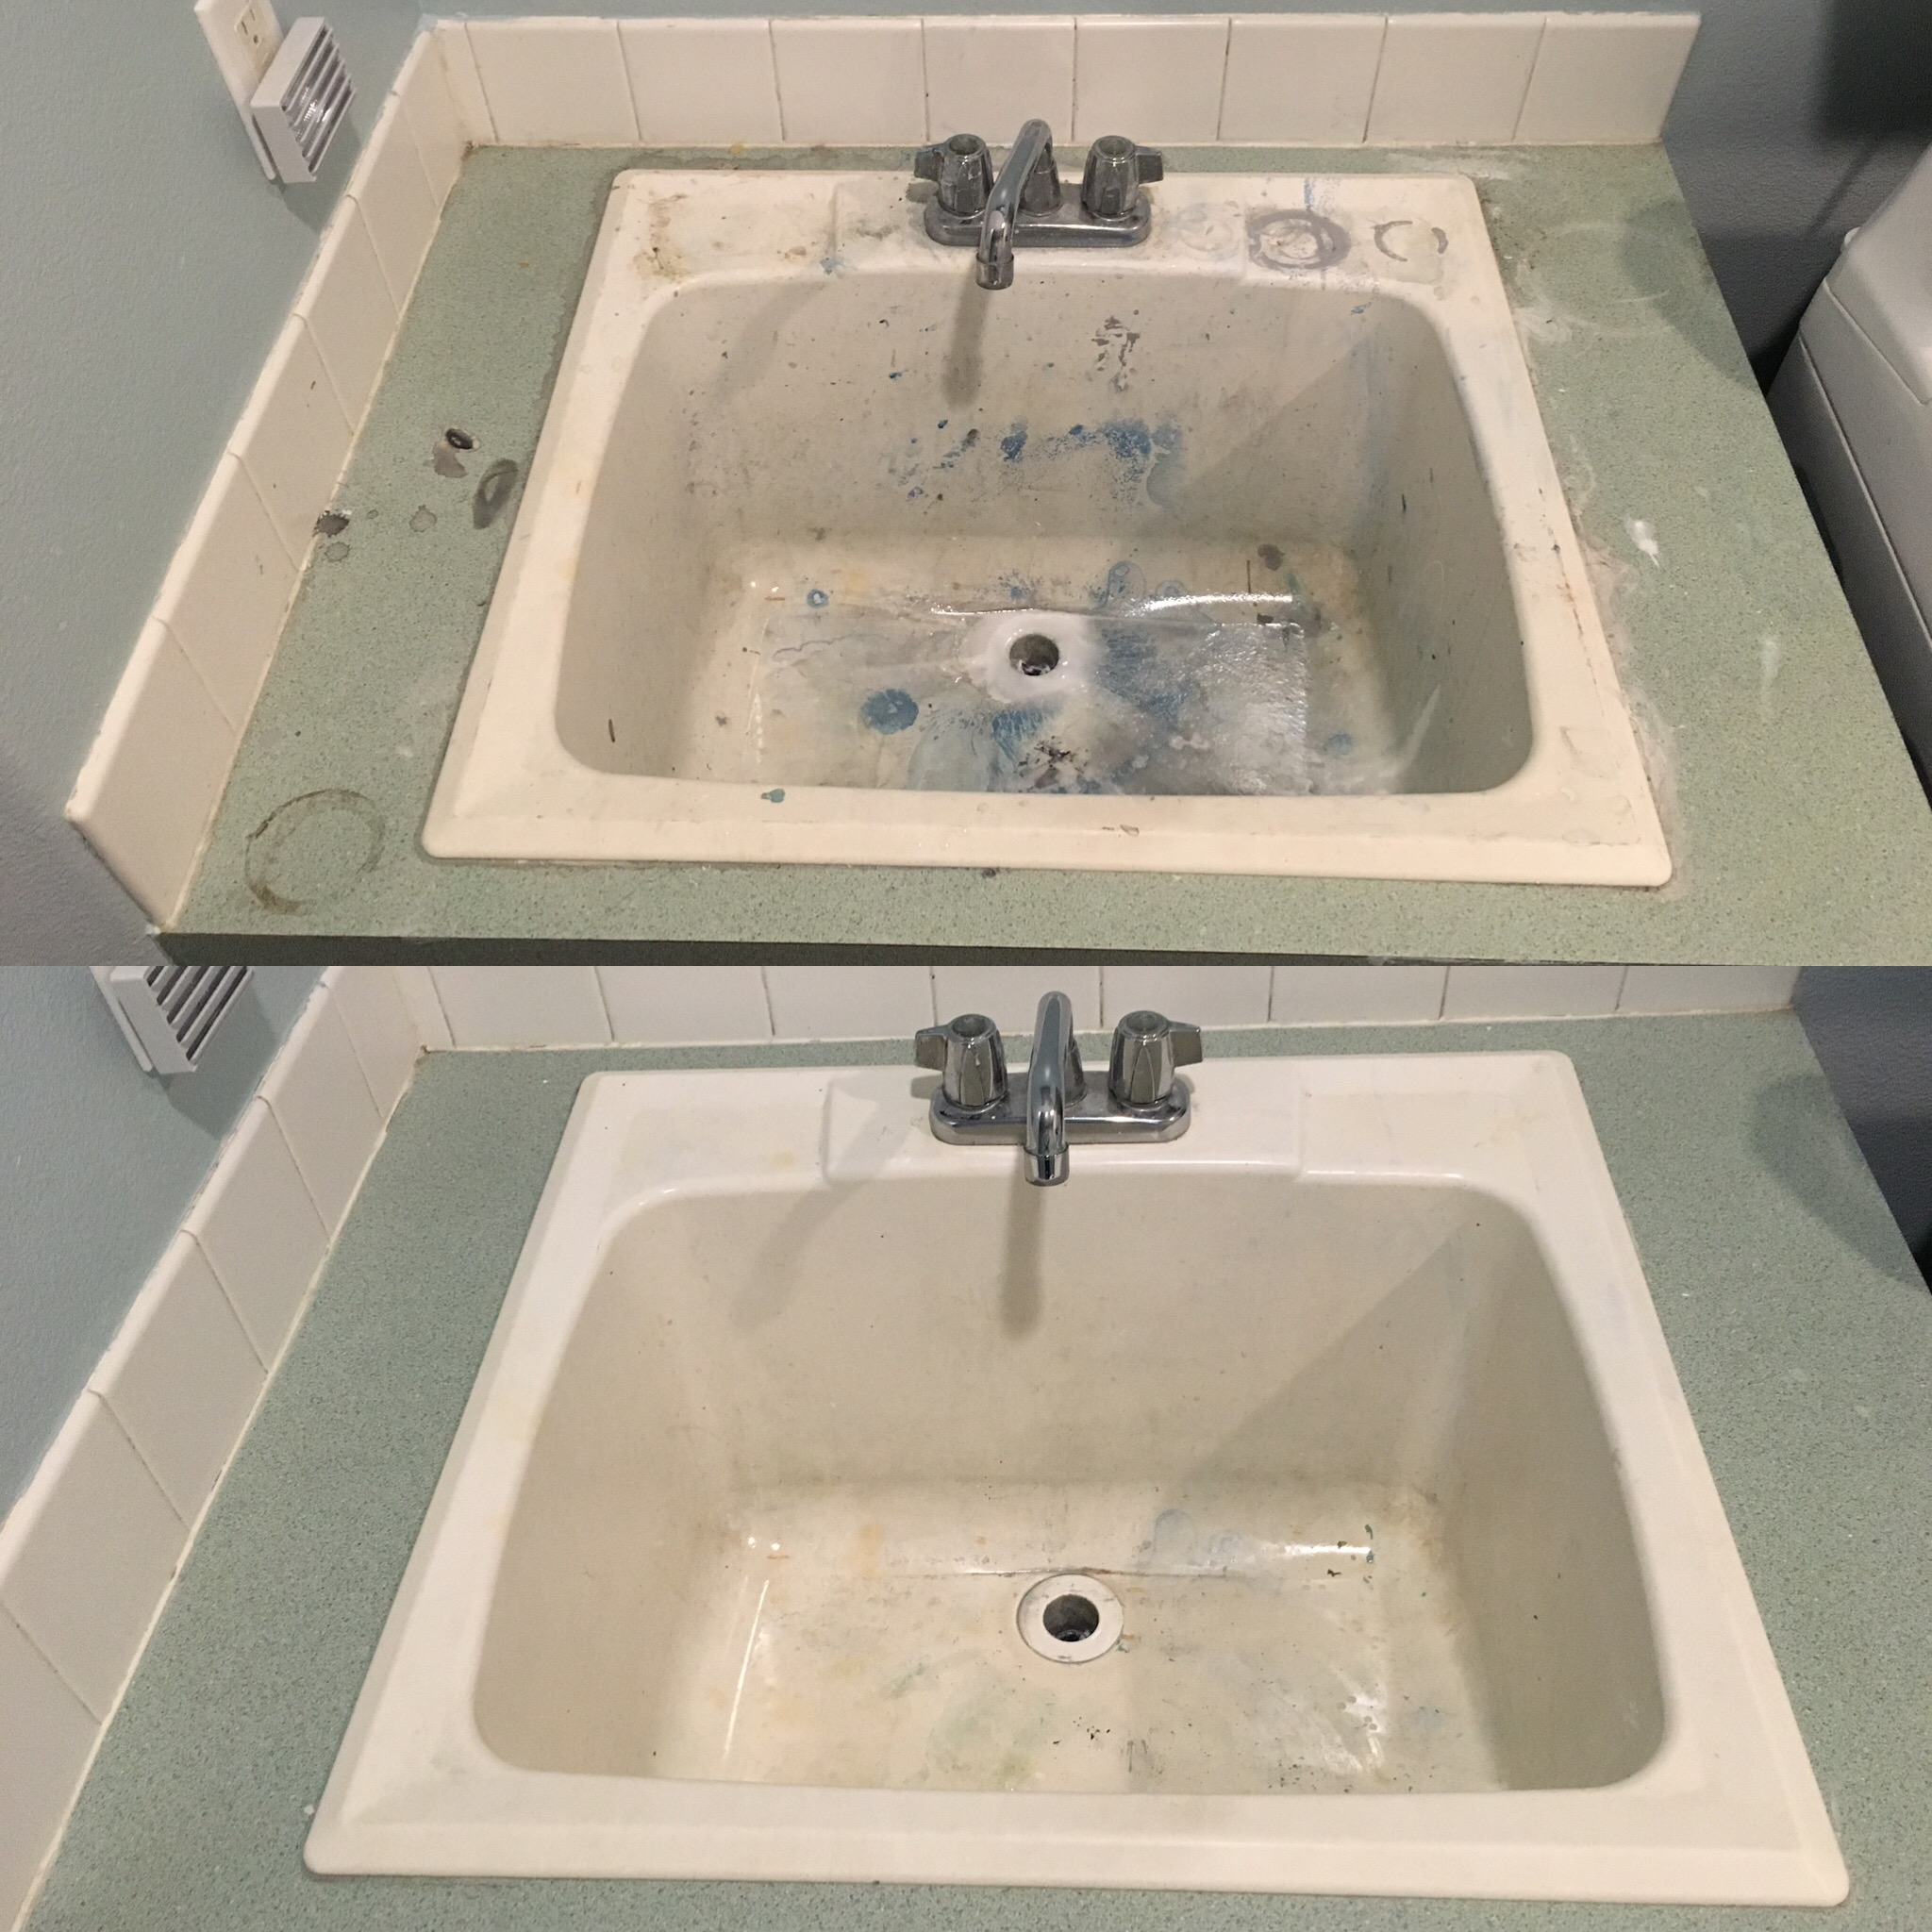 Also cleaned up that messy sink the best I could